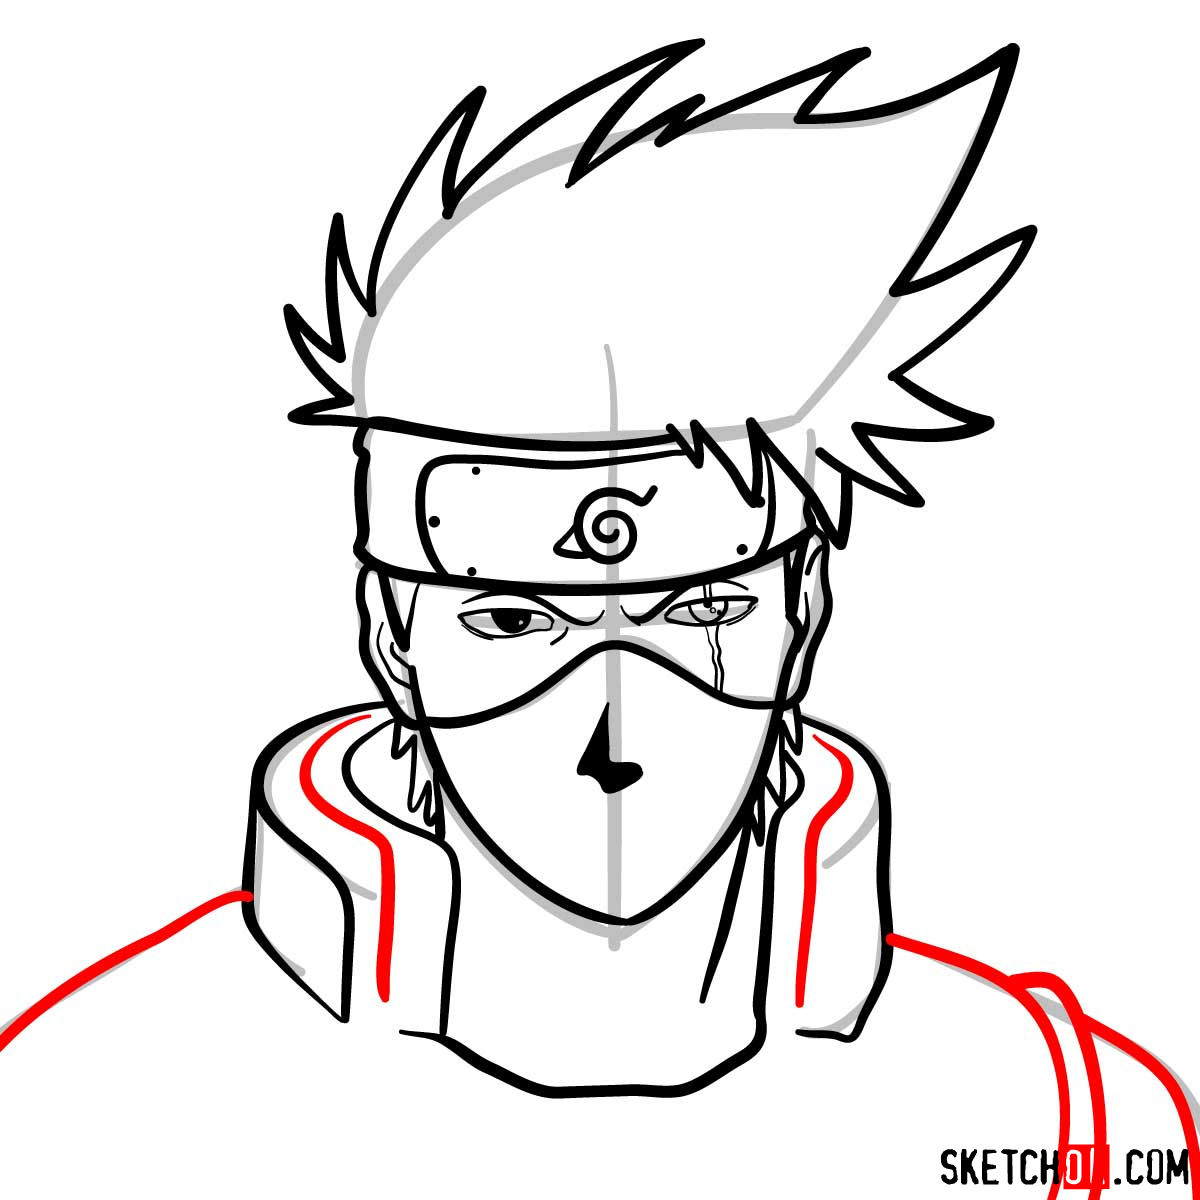 How to draw the face of Kakashi Hatake (Naruto) - step 10